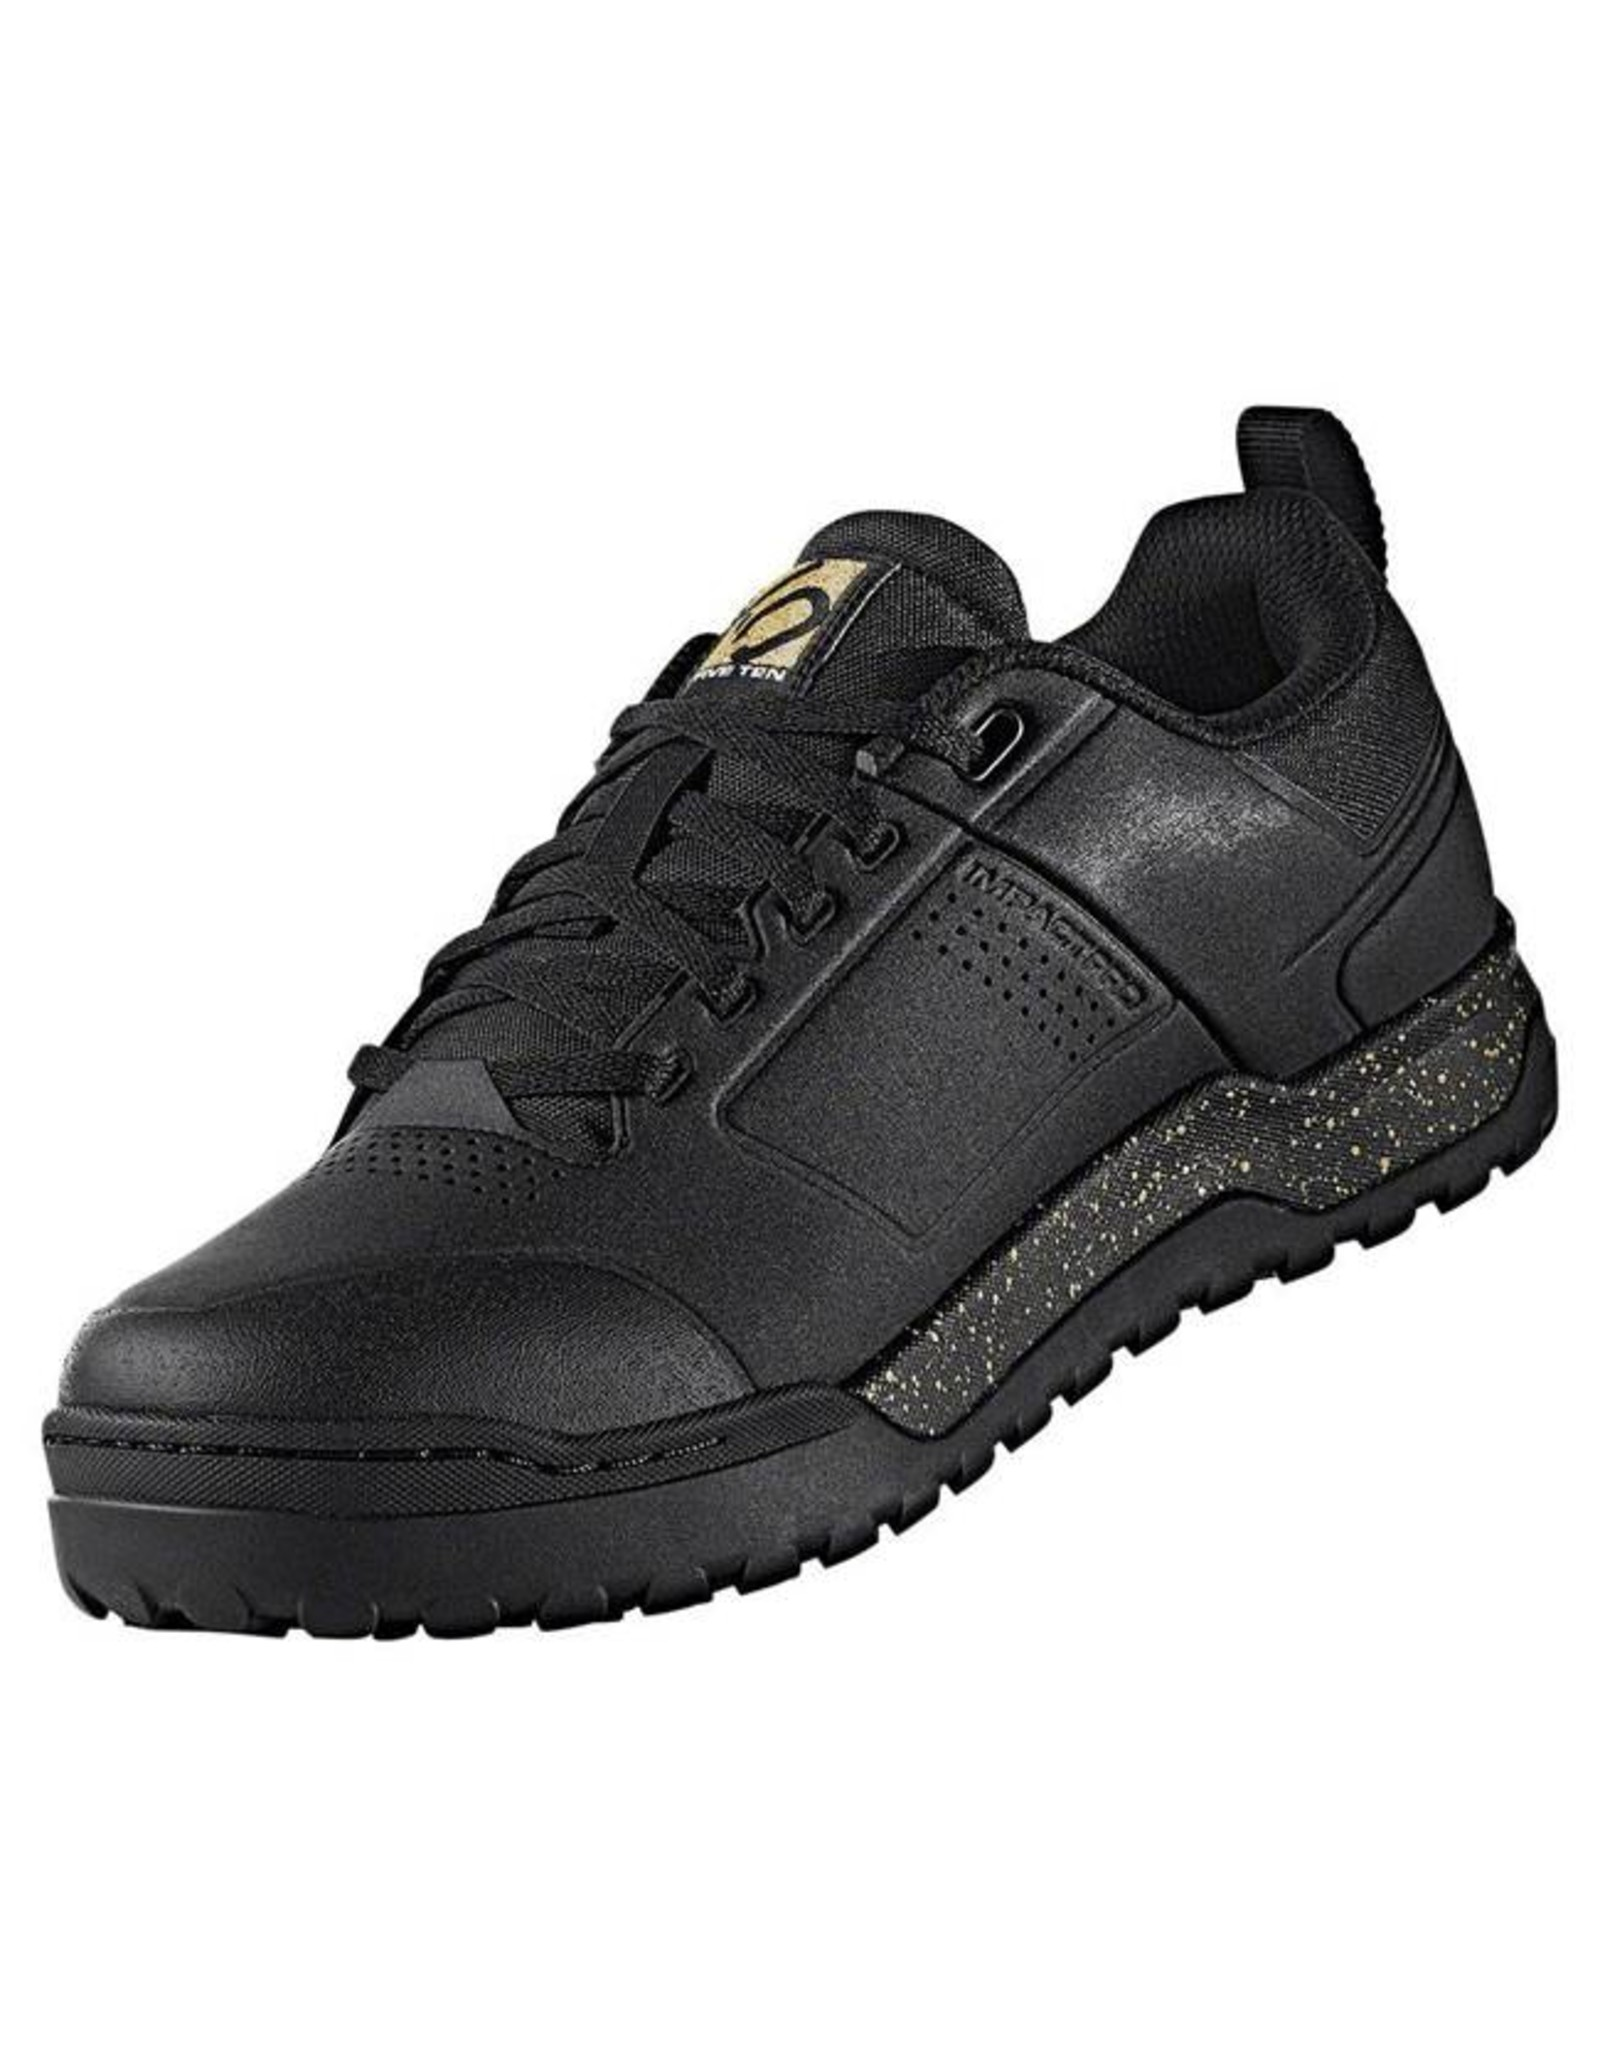 Five Ten Five Ten Impact Pro Men's Flat Pedal Shoe: Black/Gold 10.5